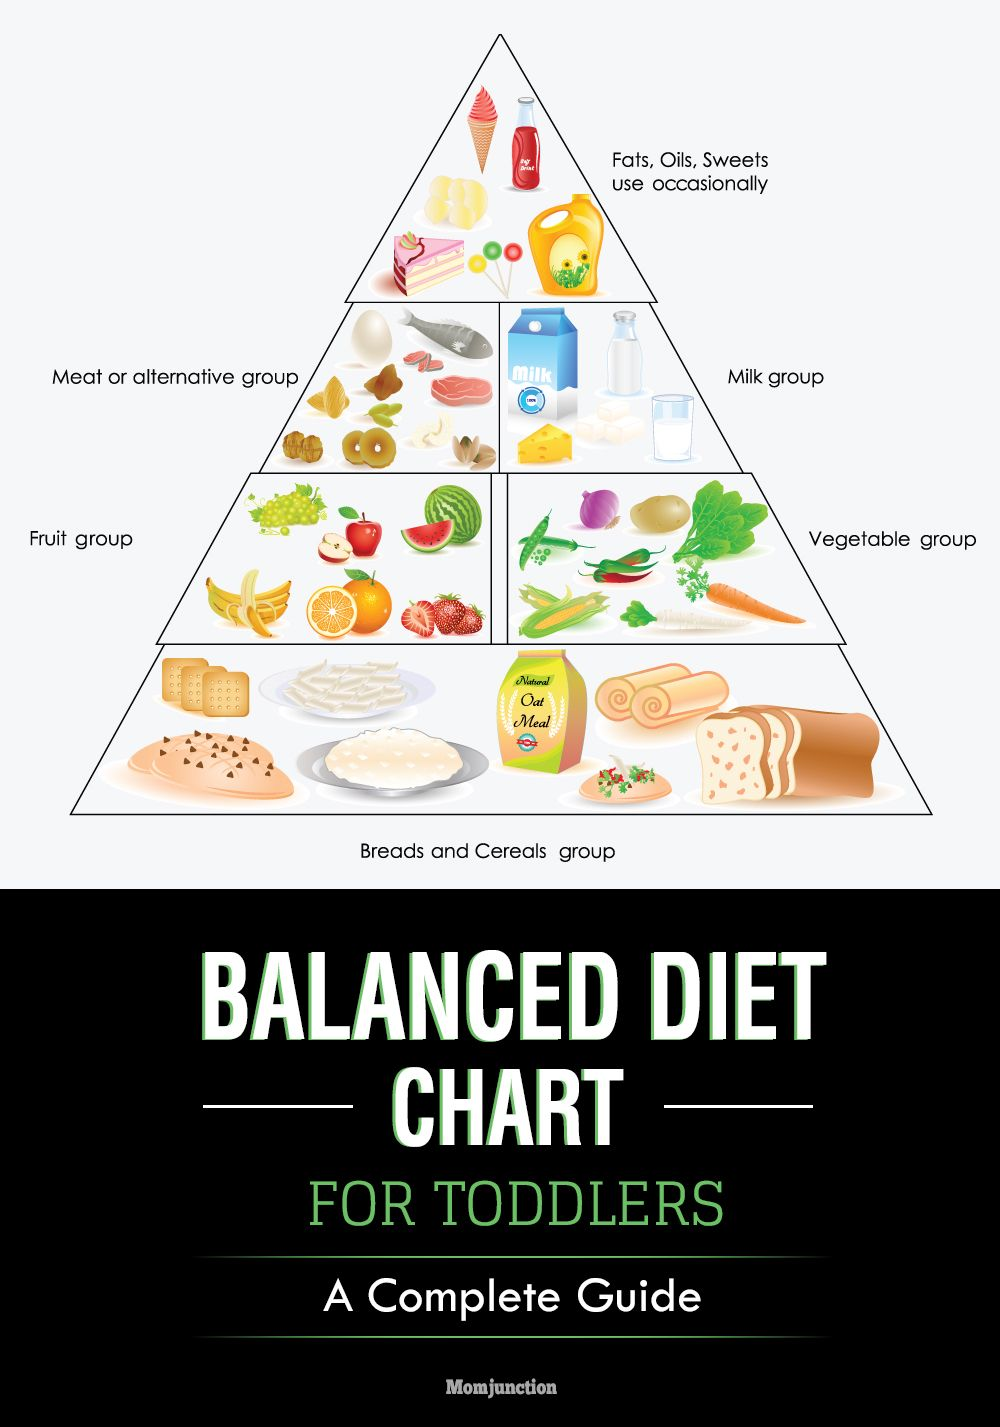 How much food should a baby eat balanced diet chart